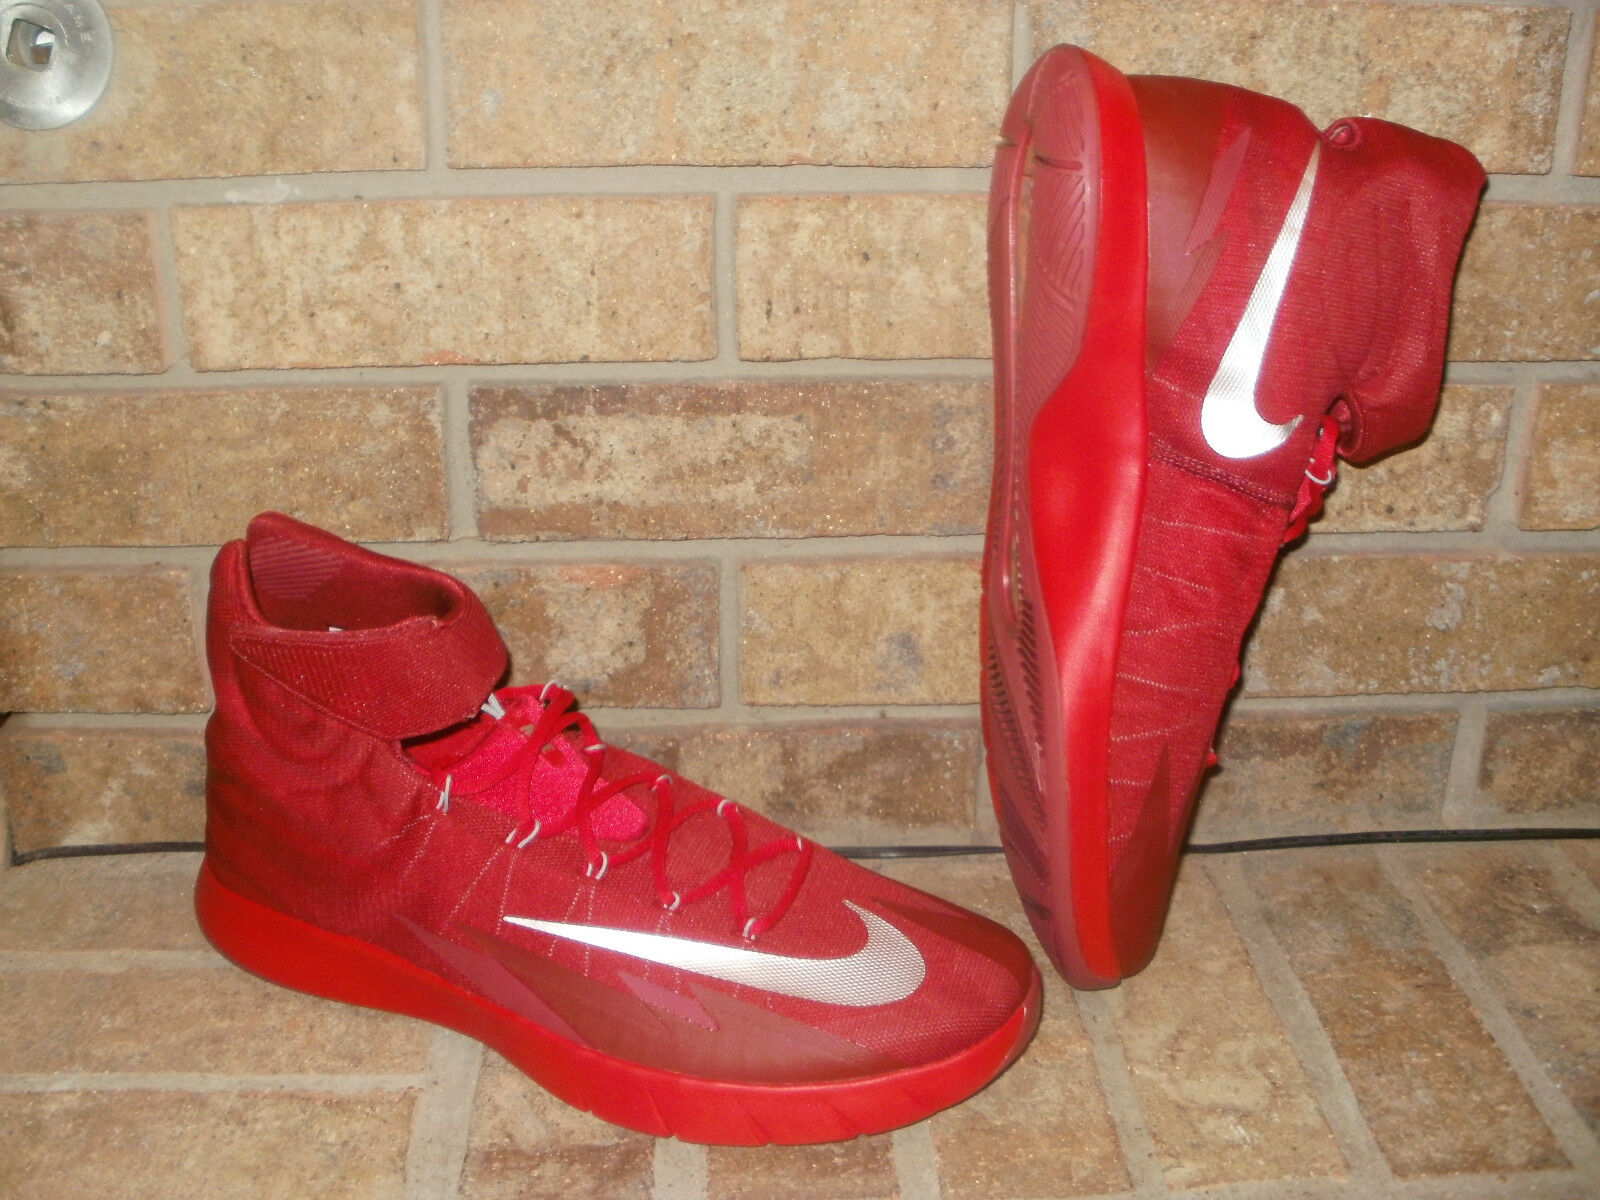 Nike Zoom HyperRev 2014 Basketball Shoe /SZ 17 M /643301 604/Red-Silver $140